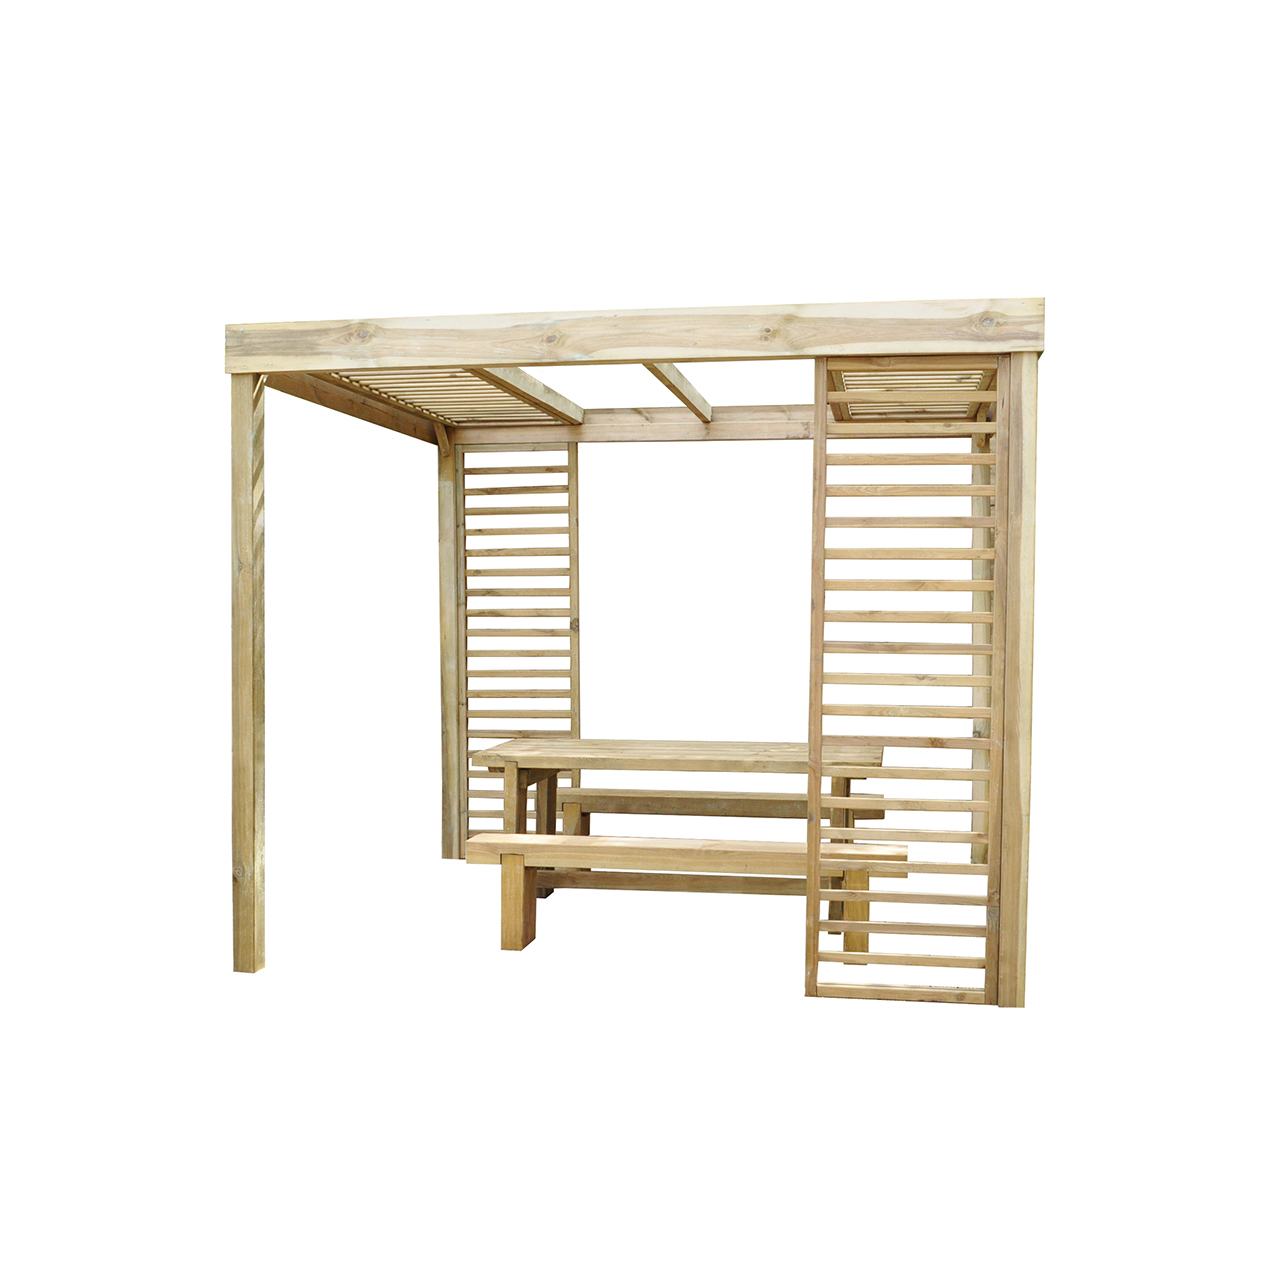 Dining Pergola 2800mm x 3040mm x 2440mm Home Delivered image 0